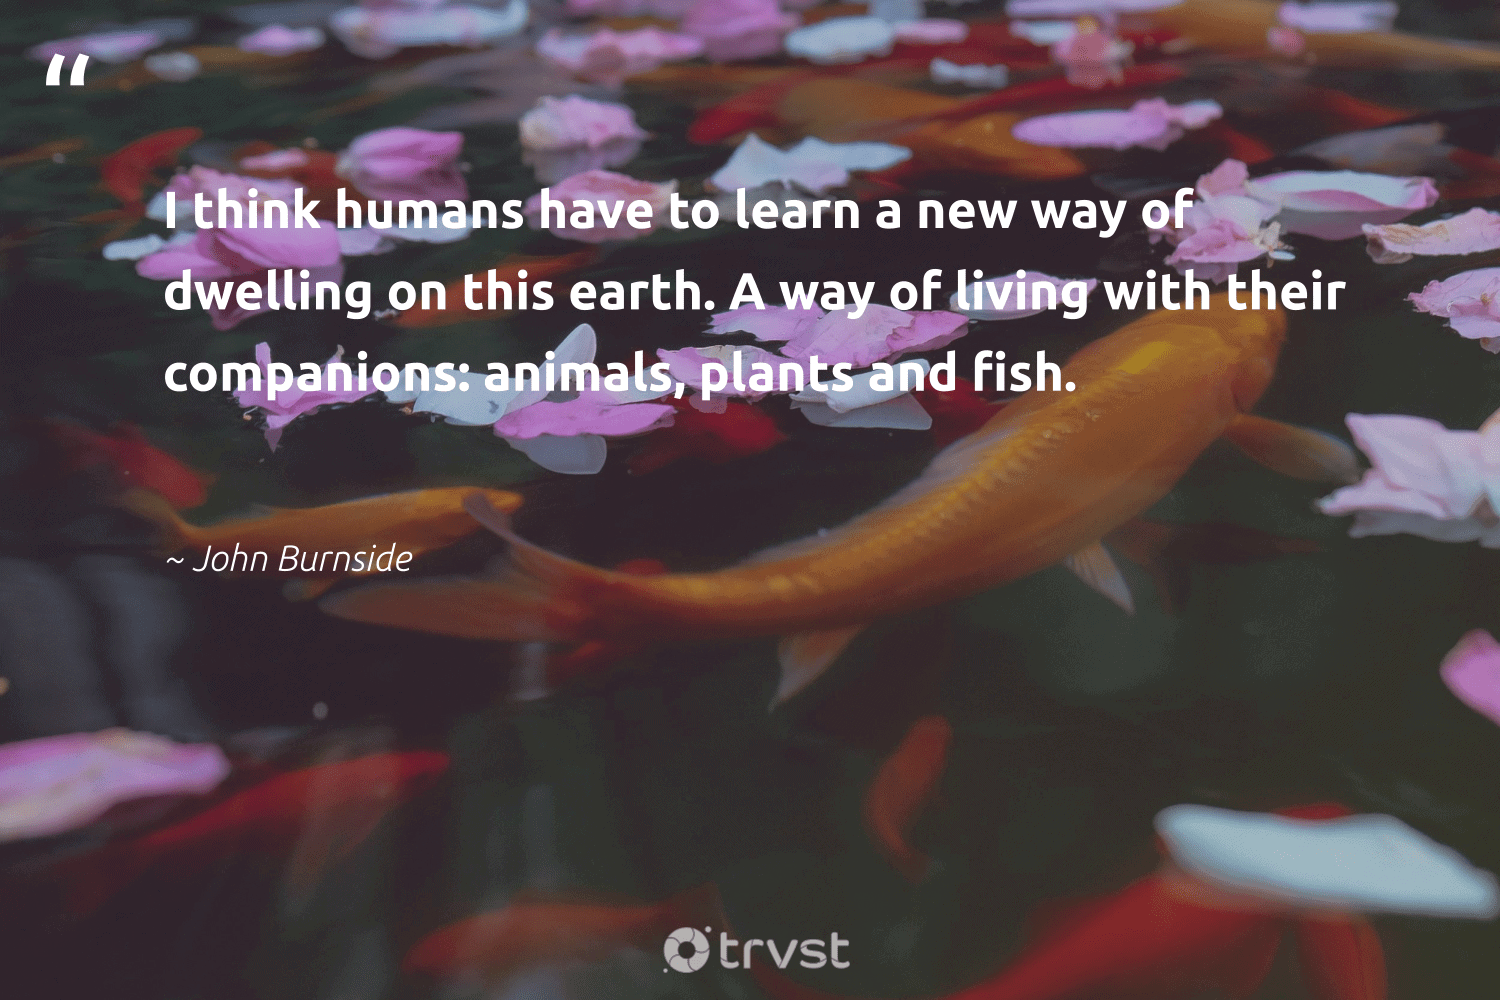 """""""I think humans have to learn a new way of dwelling on this earth. A way of living with their companions: animals, plants and fish.""""  - John Burnside #trvst #quotes #earth #fish #animals #mothernature #intheocean #green #socialchange #conservation #sustainability #climatechange"""